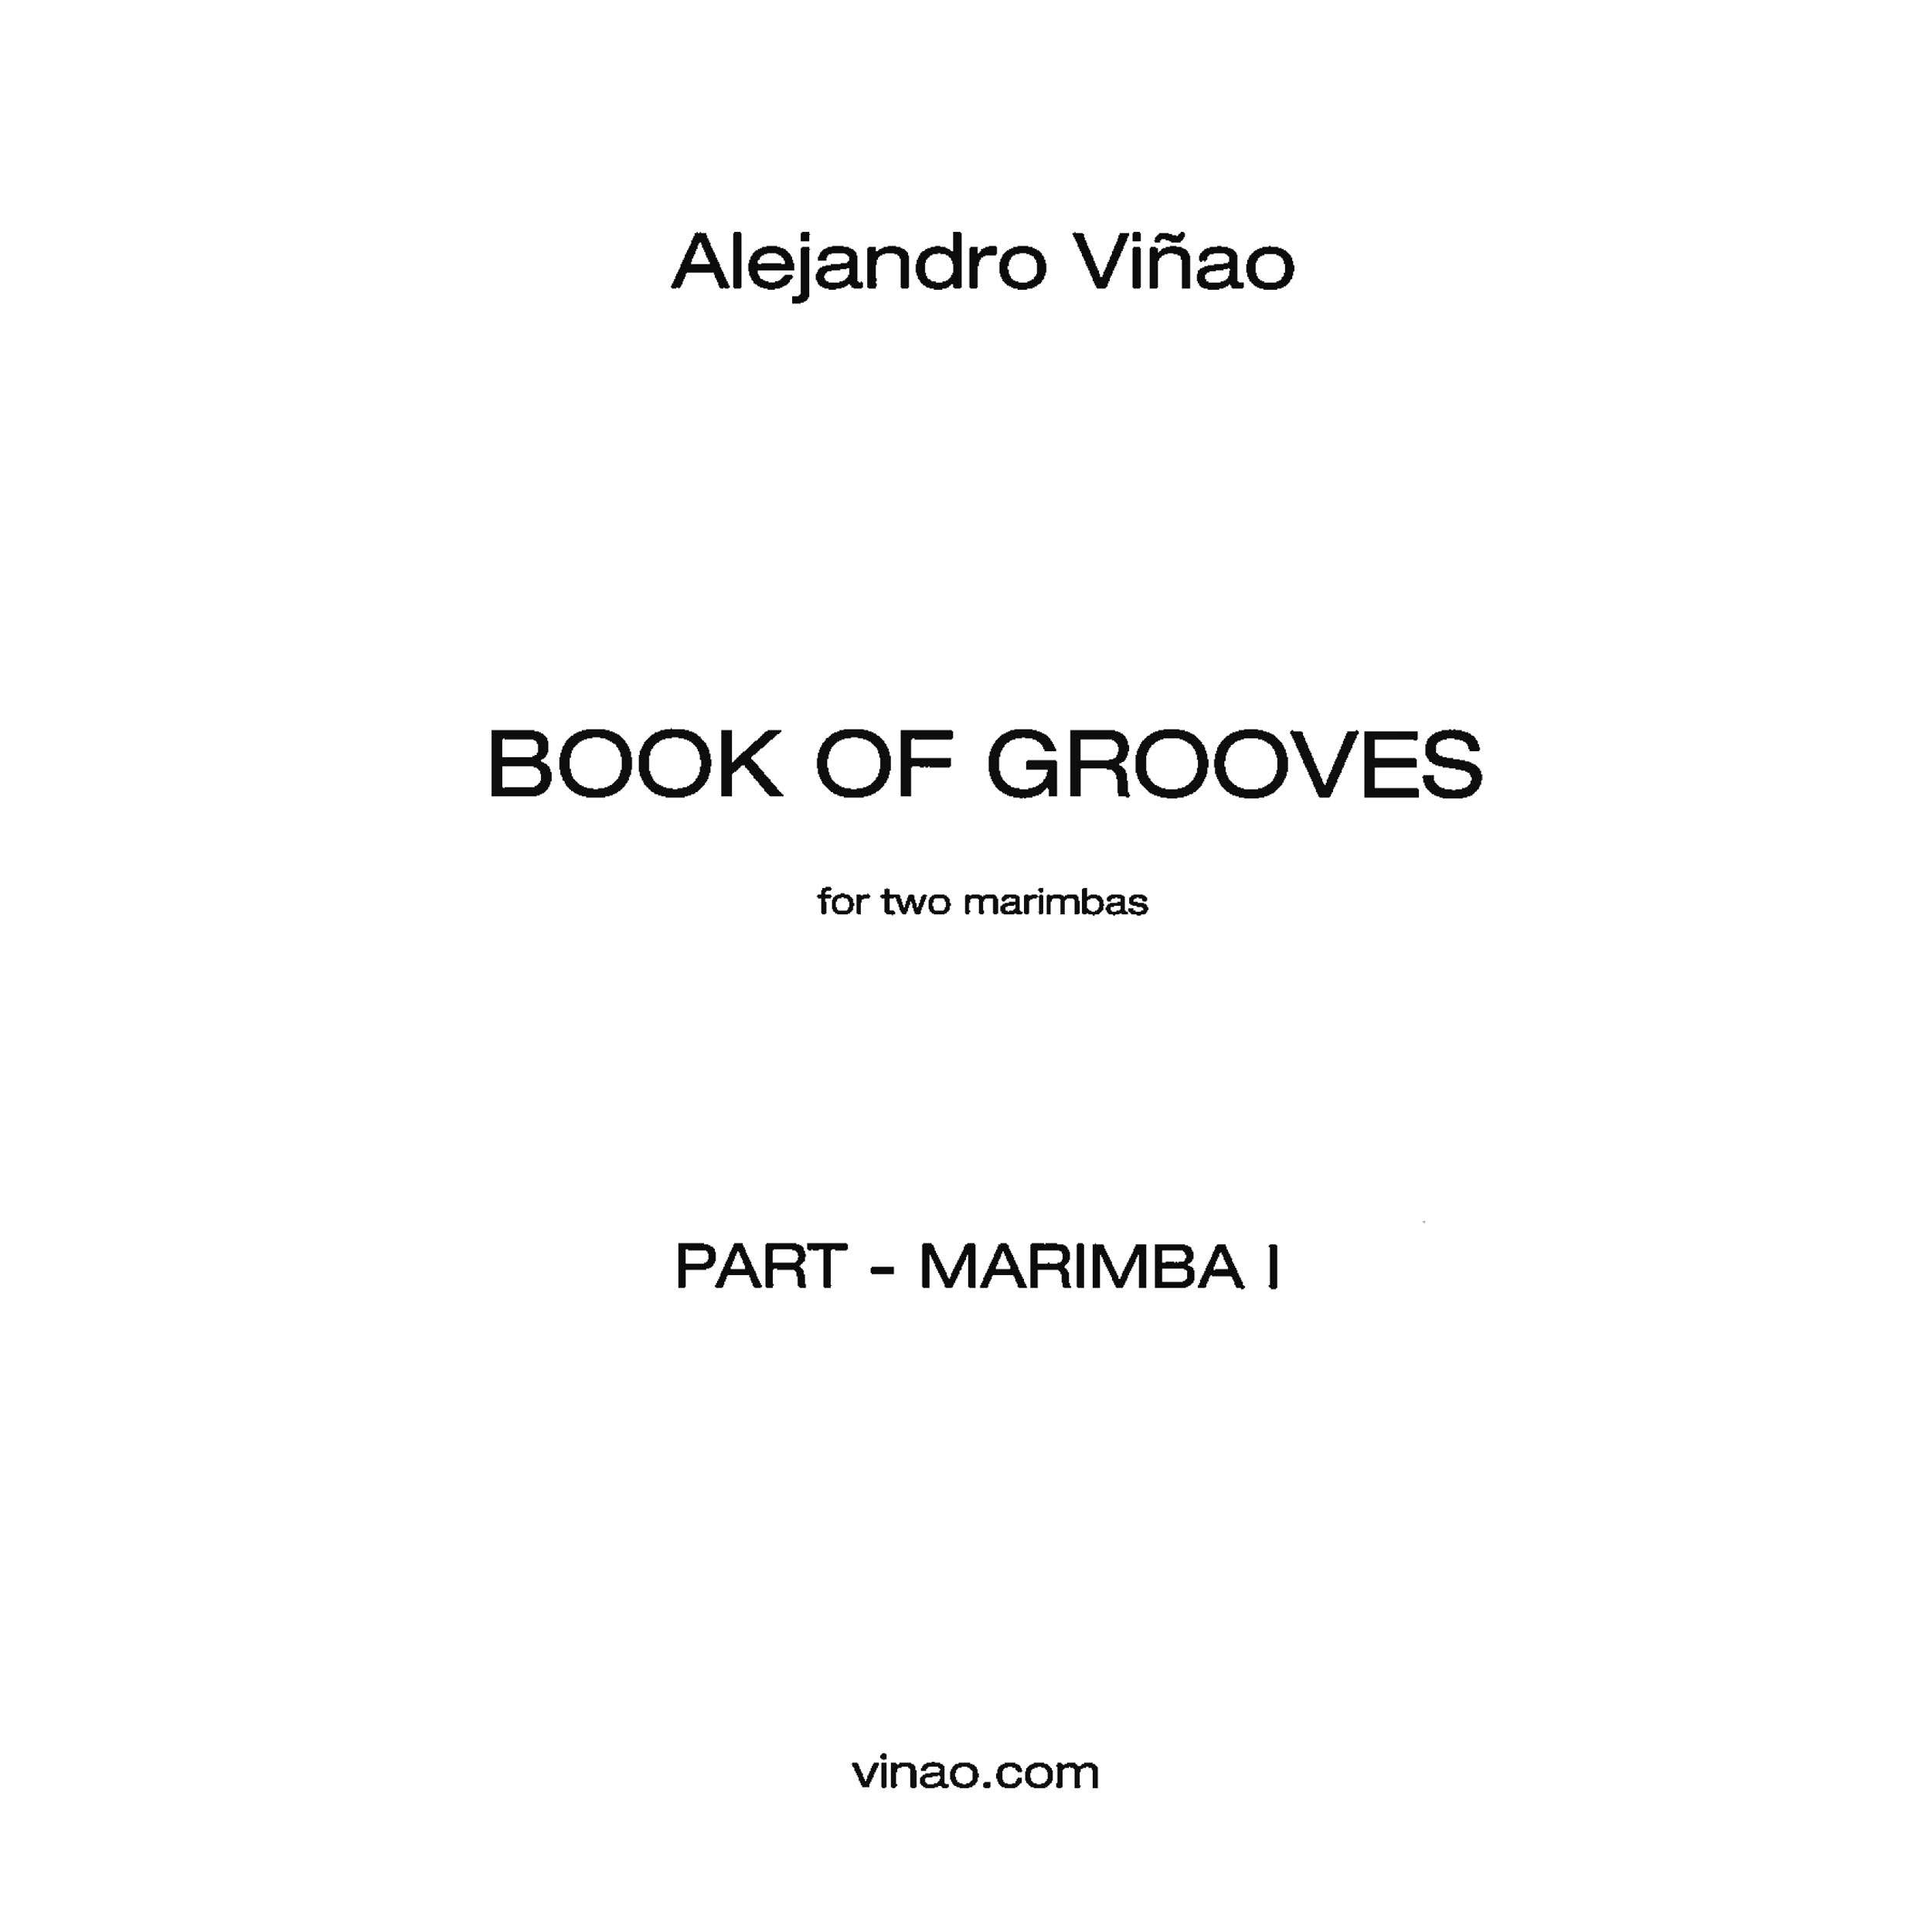 Book of Grooves by Alejandro Vinao (Parts)